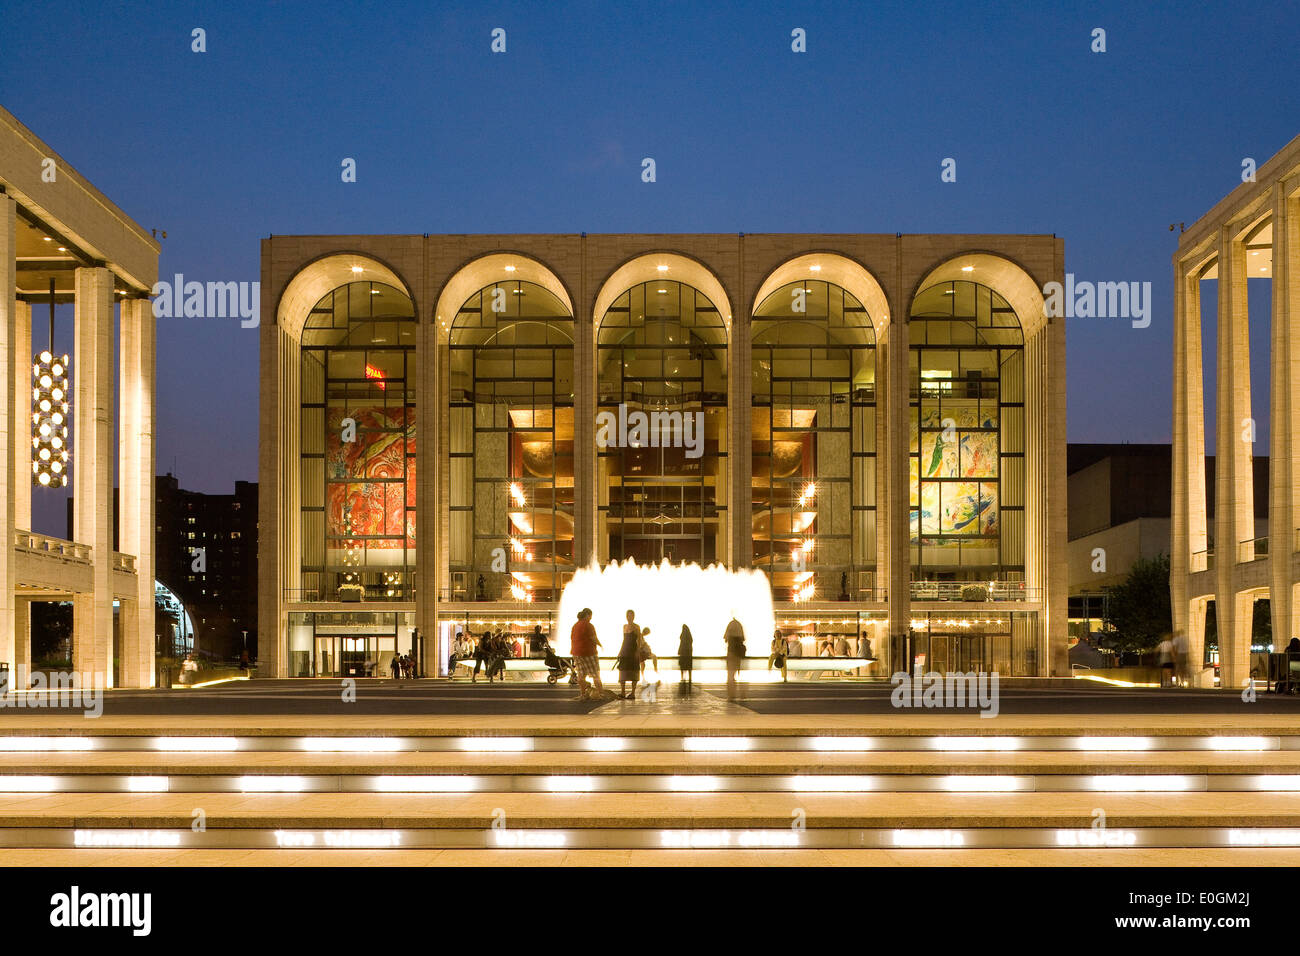 Metropolitan Opera House at Lincoln Center for the Performing Arts, Manhattan, New York City, New York, North America, USA - Stock Image